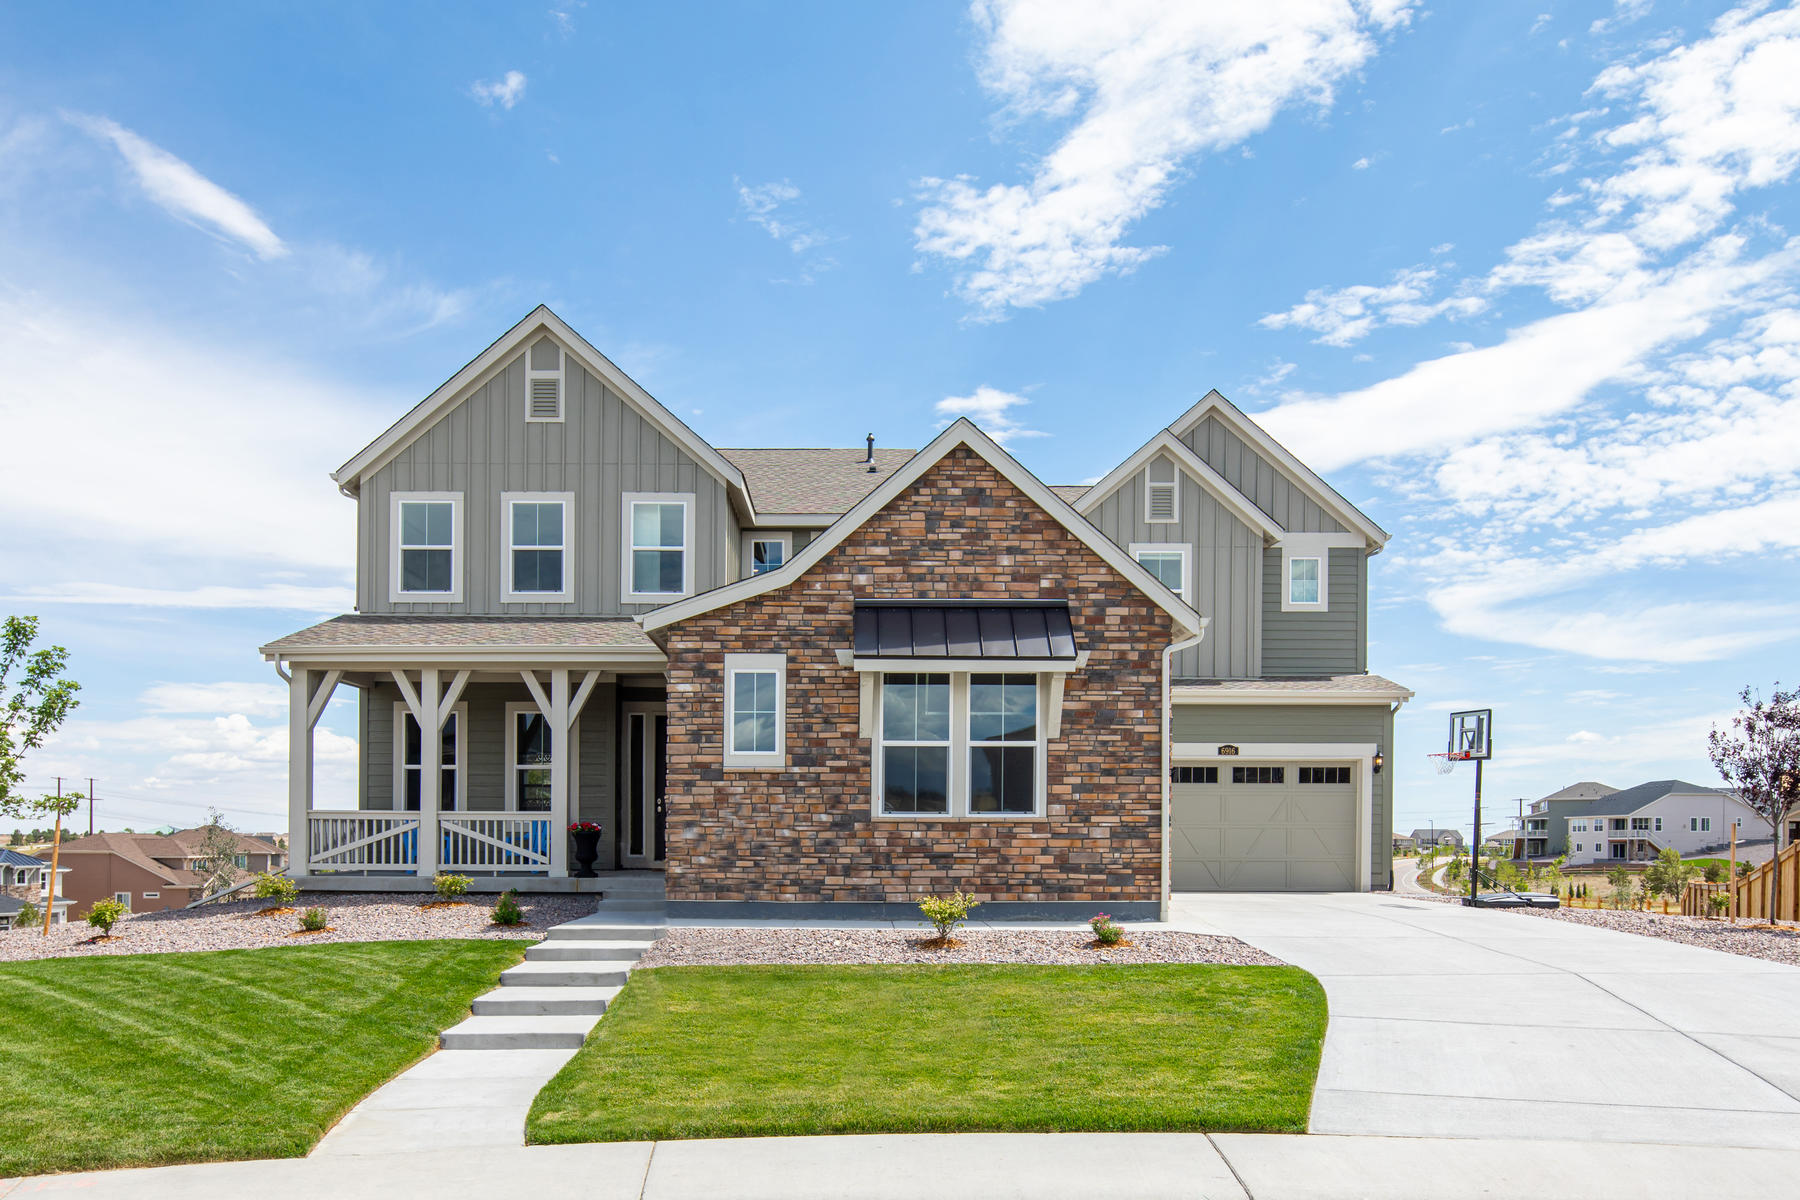 Casa unifamiliar en venta en/de 6916 Murphy Creek Lane, Castle Pines, Colorado ,80108  , EUA